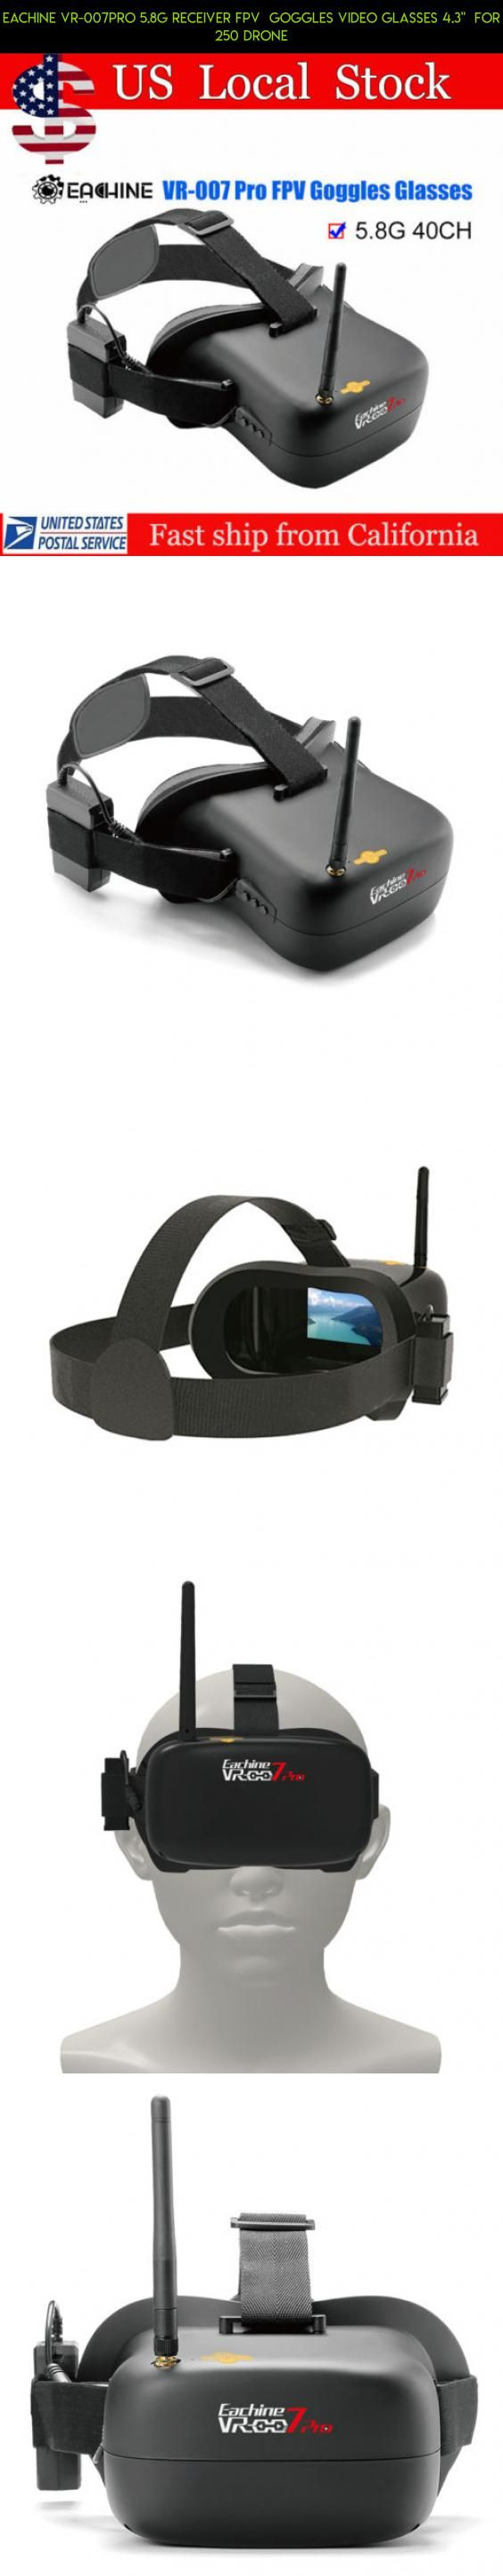 "Eachine VR-007PRO 5.8G Receiver FPV  Goggles Video Glasses 4.3""  For 250 Drone #parts #fpv #gadgets #drone #plans #007 #kit #camera #shopping #technology #racing #eachine #products #pro #tech"